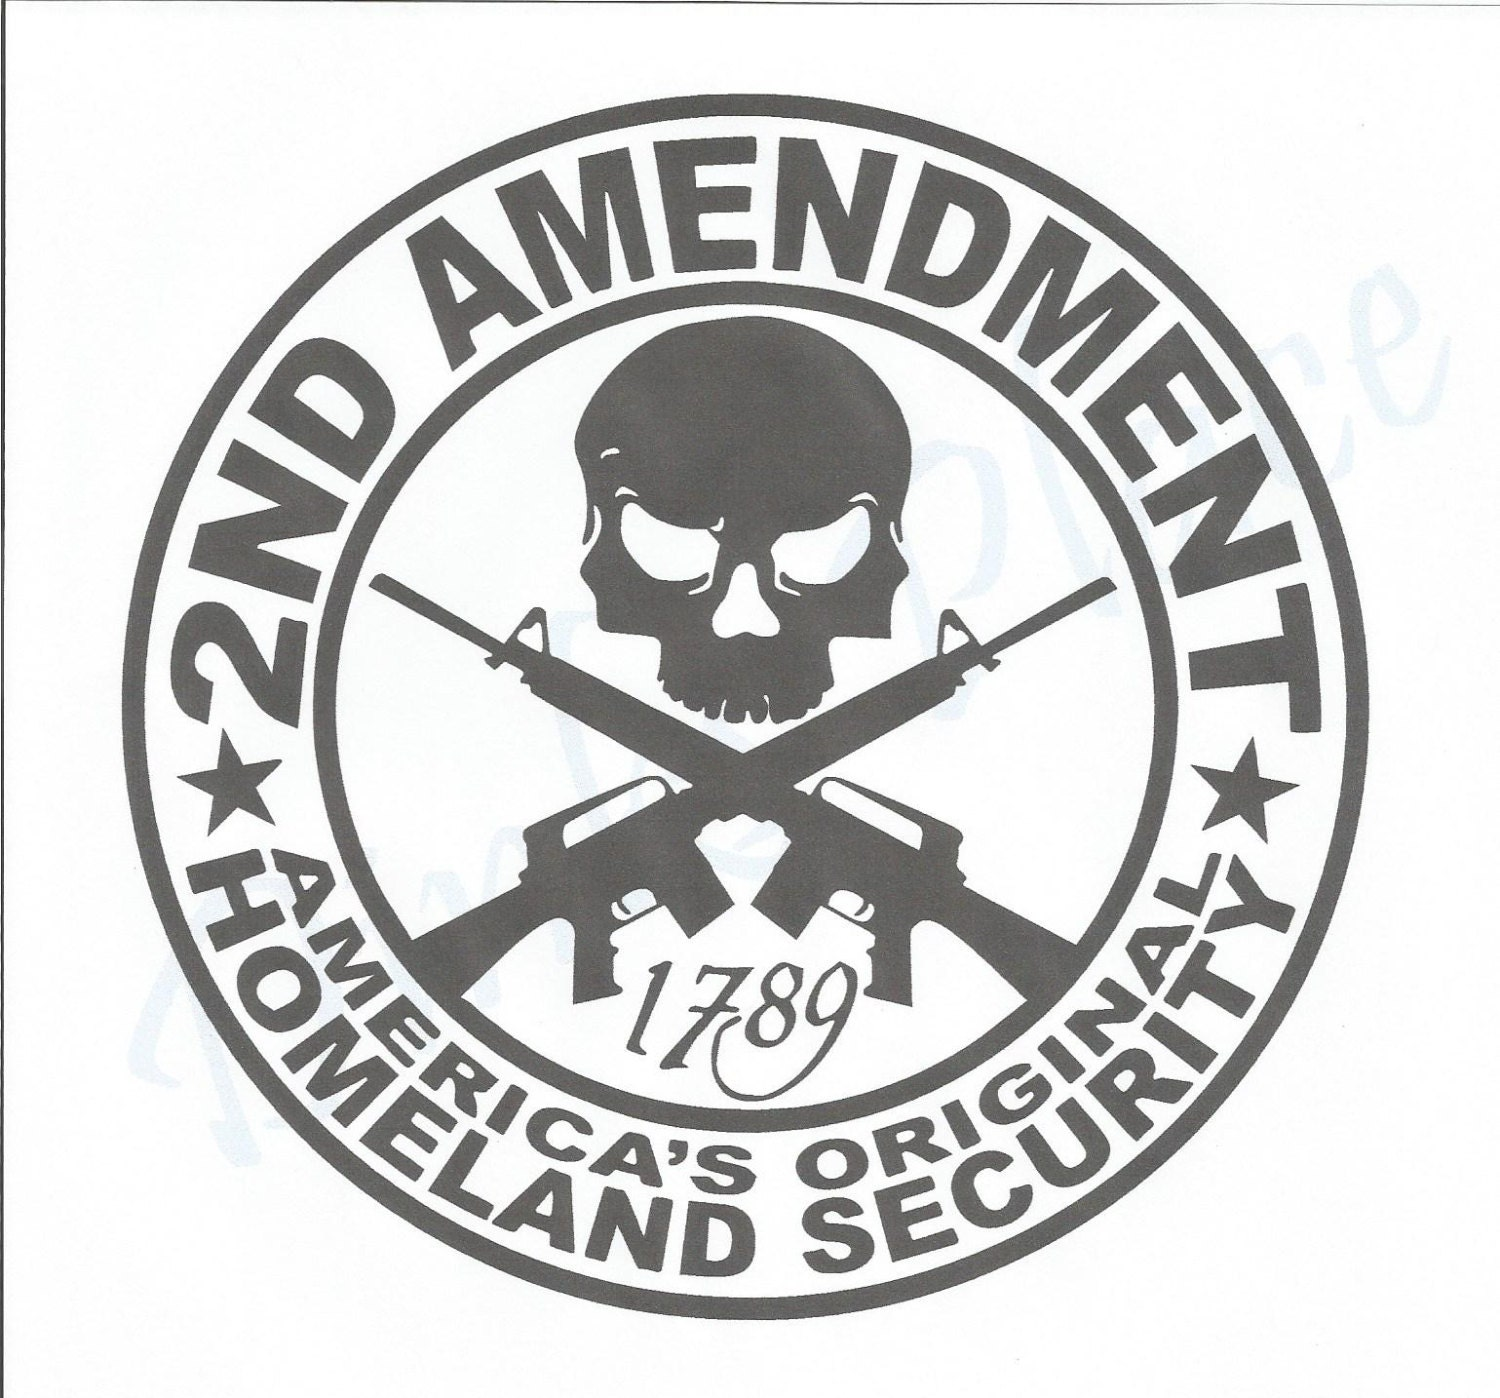 2nd amendmentericas original homeland security vinyl zoom buycottarizona